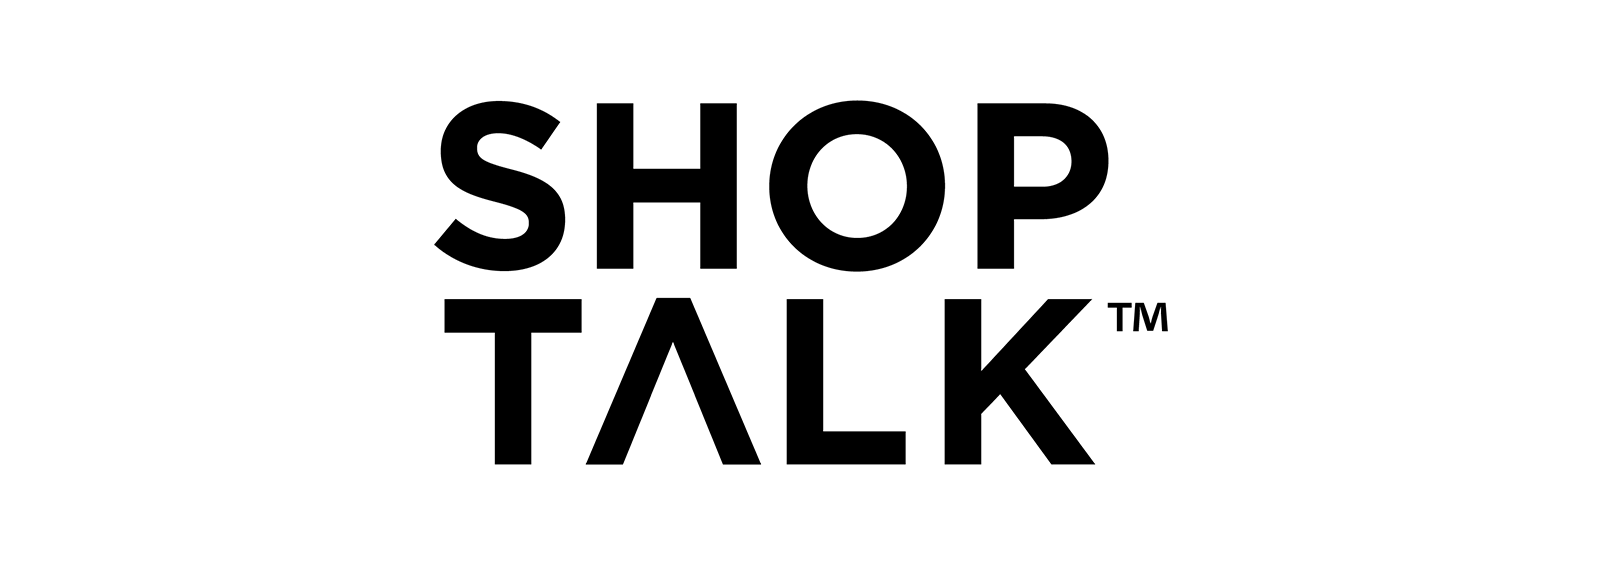 0_1_0000s_0017_ShopTalk.png